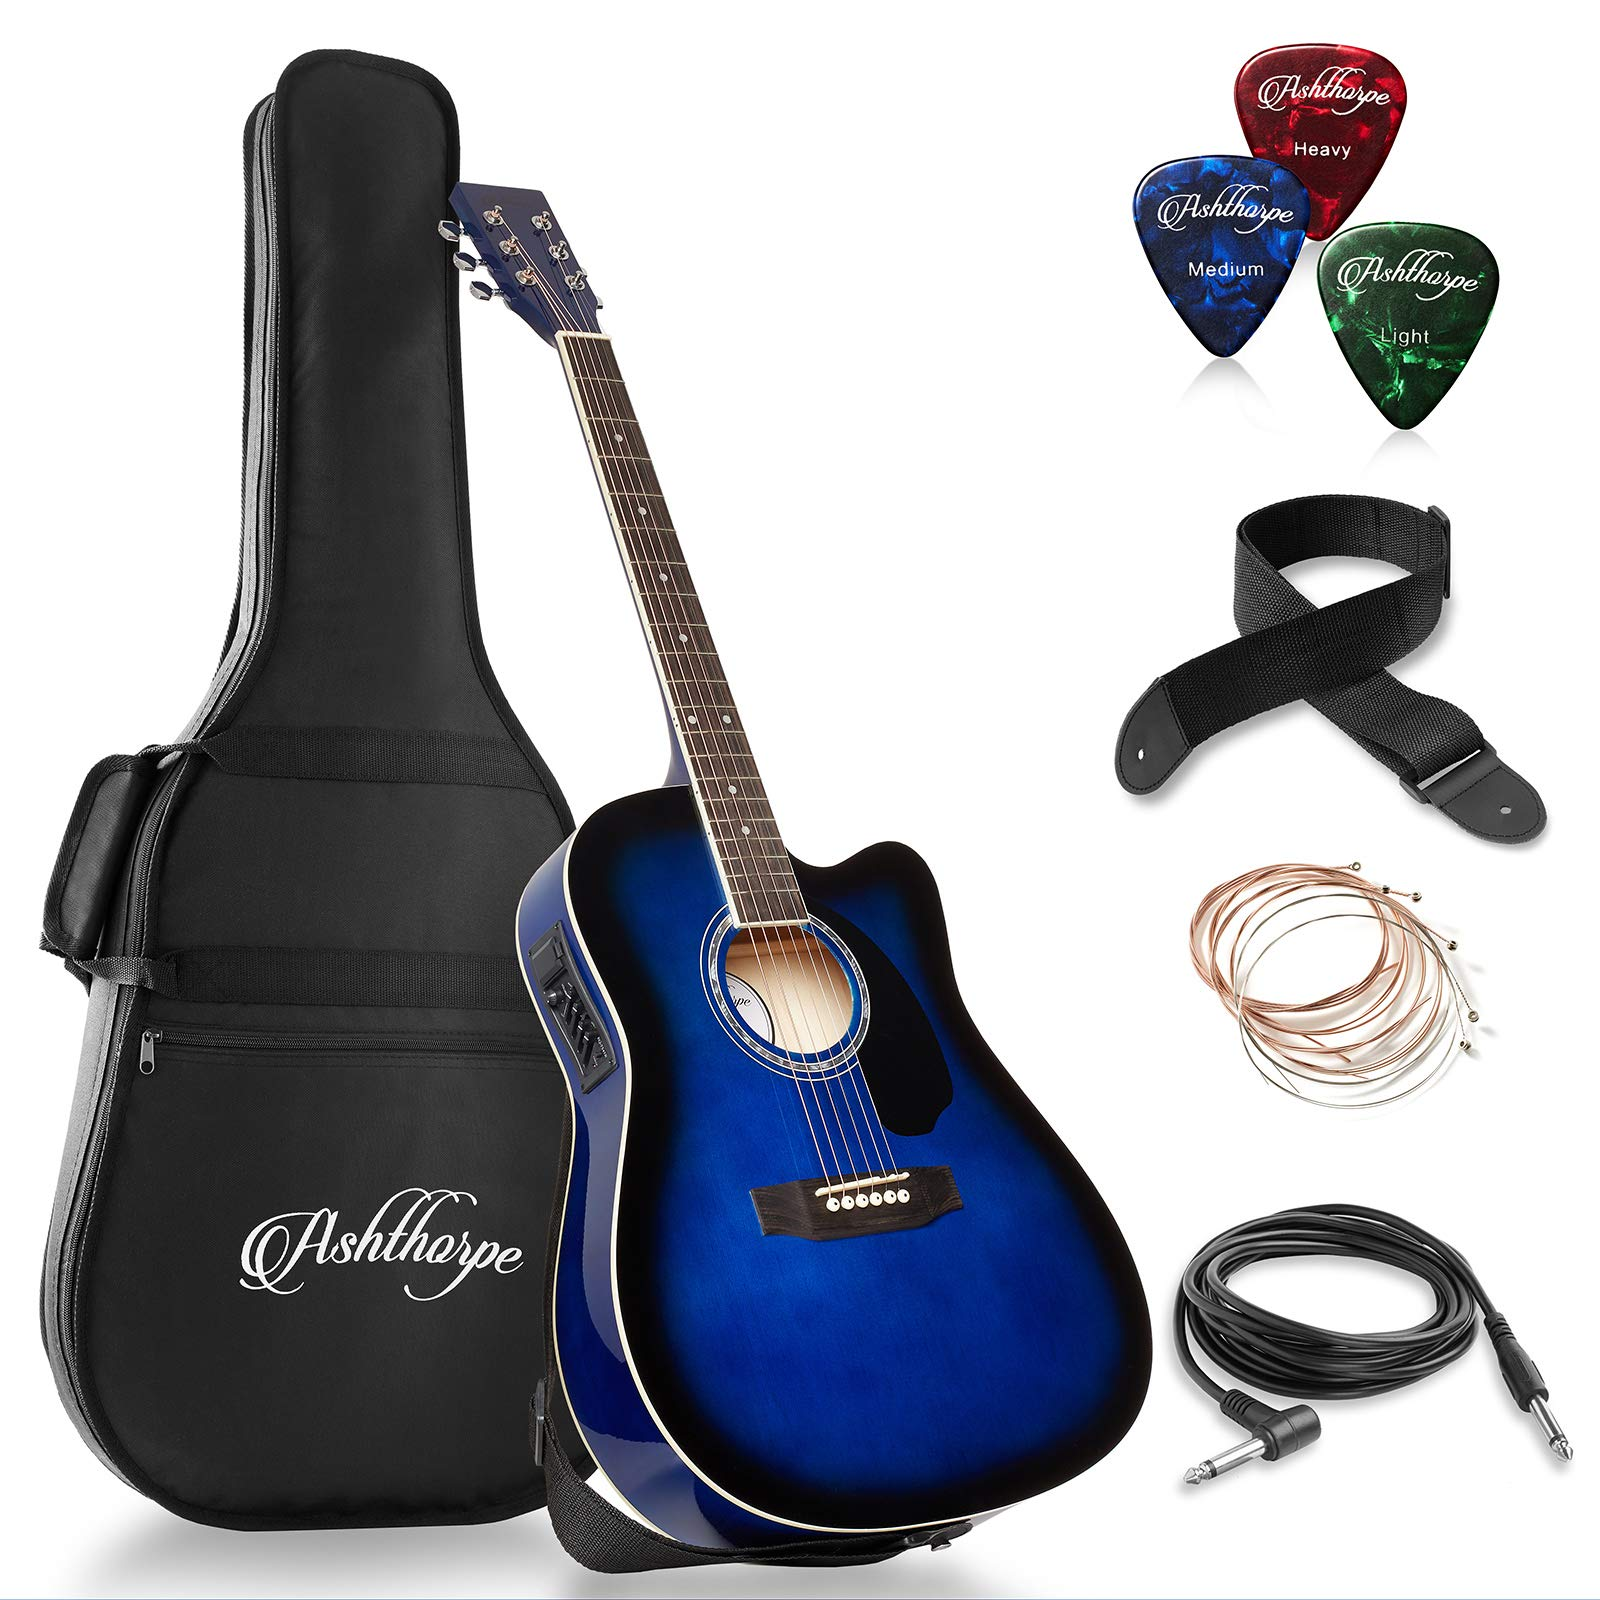 Ashthorpe Full-Size Cutaway Thinline Acoustic-Electric Guitar Package - Premium Tonewoods - Blue by Ashthorpe